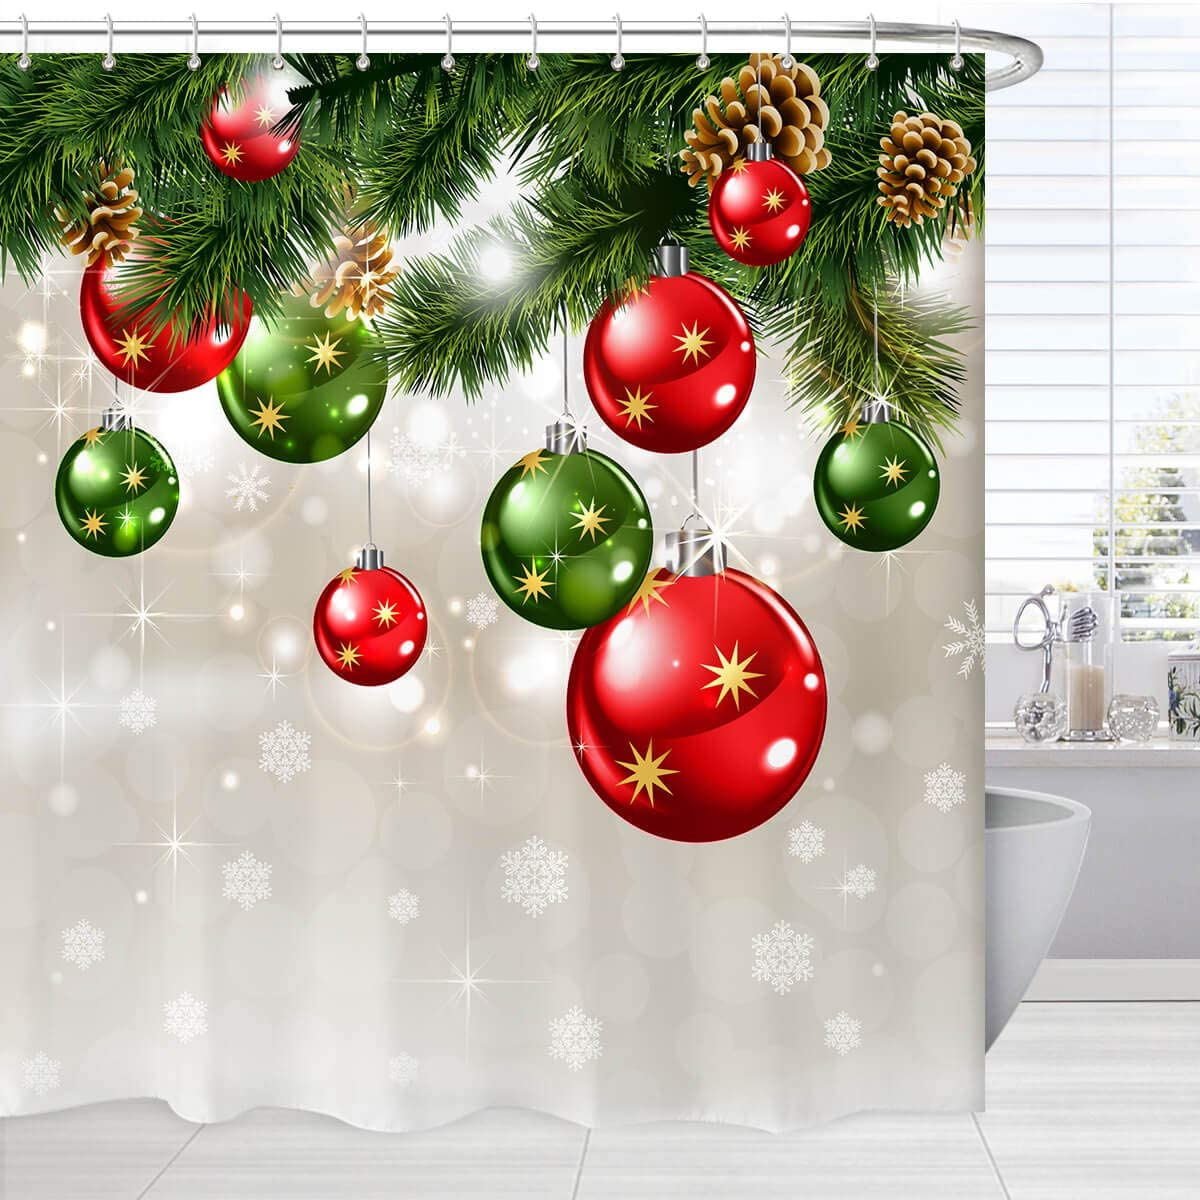 Amazon Com Broshan Green Christmas Shower Curtain Set Merry Xmas Baubles On Pine Tree Twig Art Print Holiday Bath Bathtub Curtain Christmas Fabric Bathroom Shower Curtains With Hooks Kitchen Dining